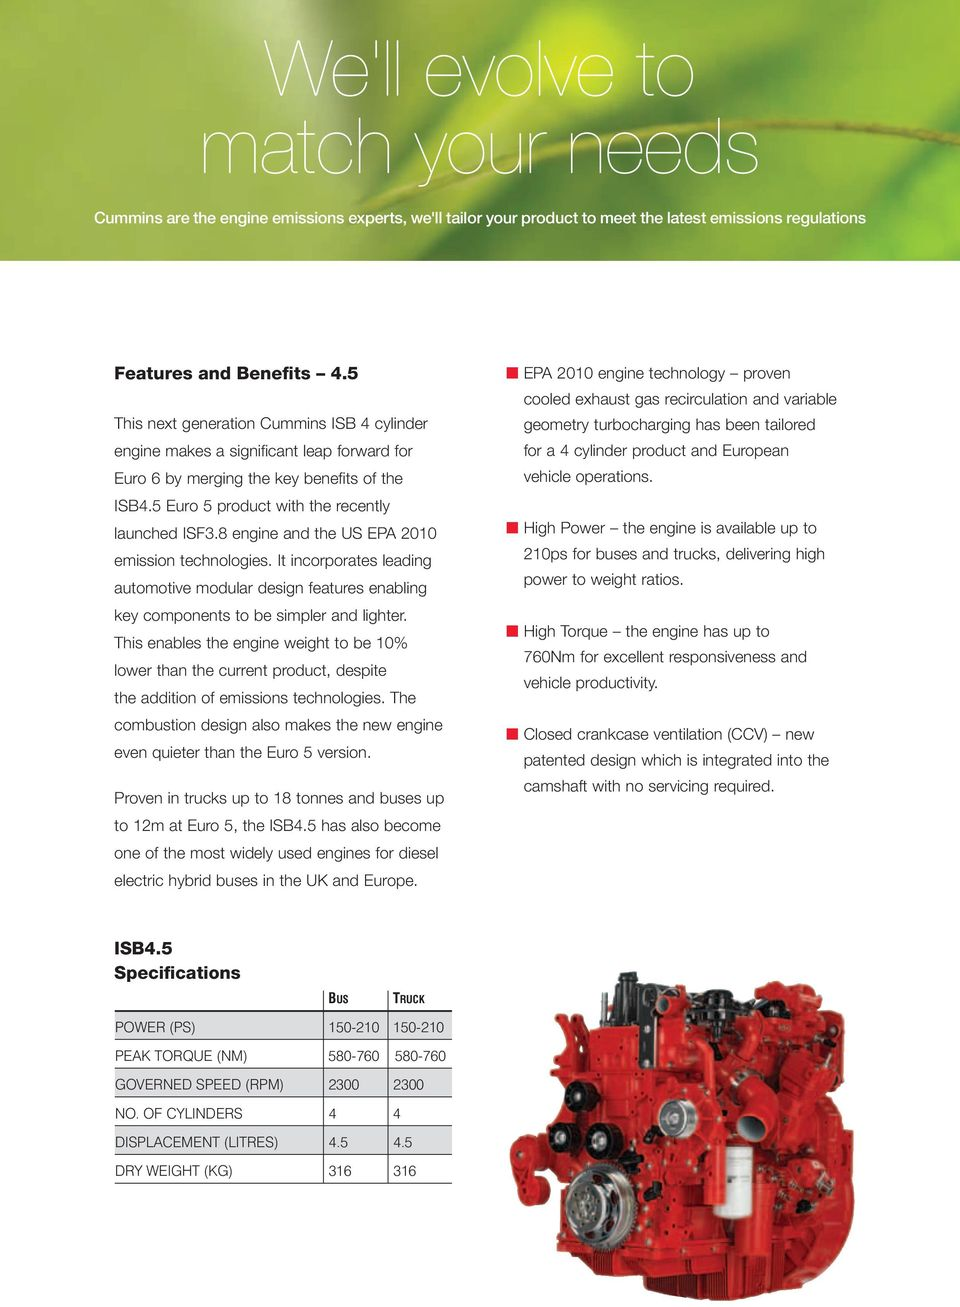 8 engine and the US EPA 2010 emission technologies. It incorporates leading automotive modular design features enabling key components to be simpler and lighter.